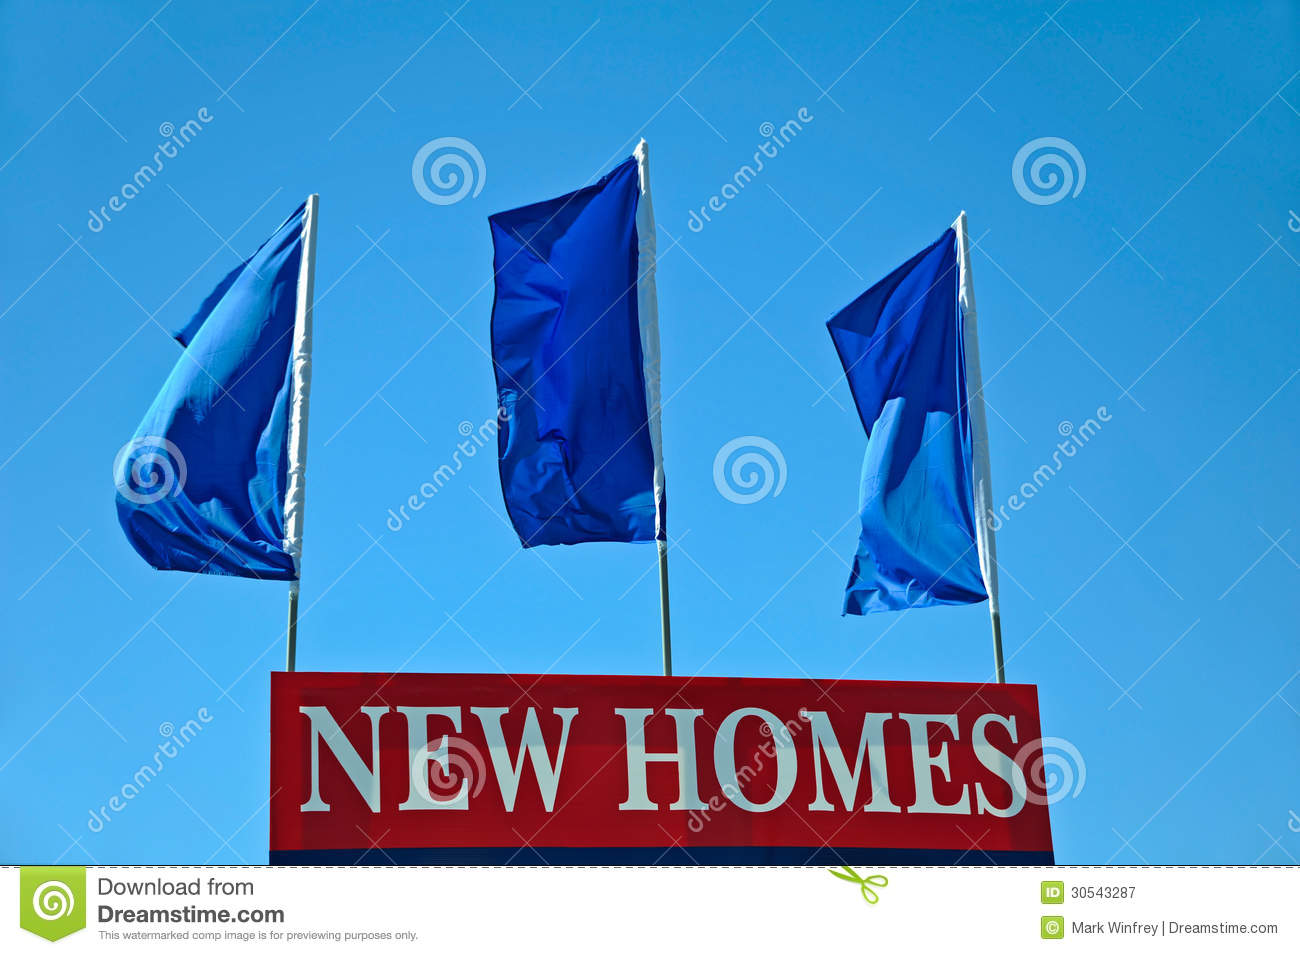 New homes sign royalty free stock photography image for New home sign